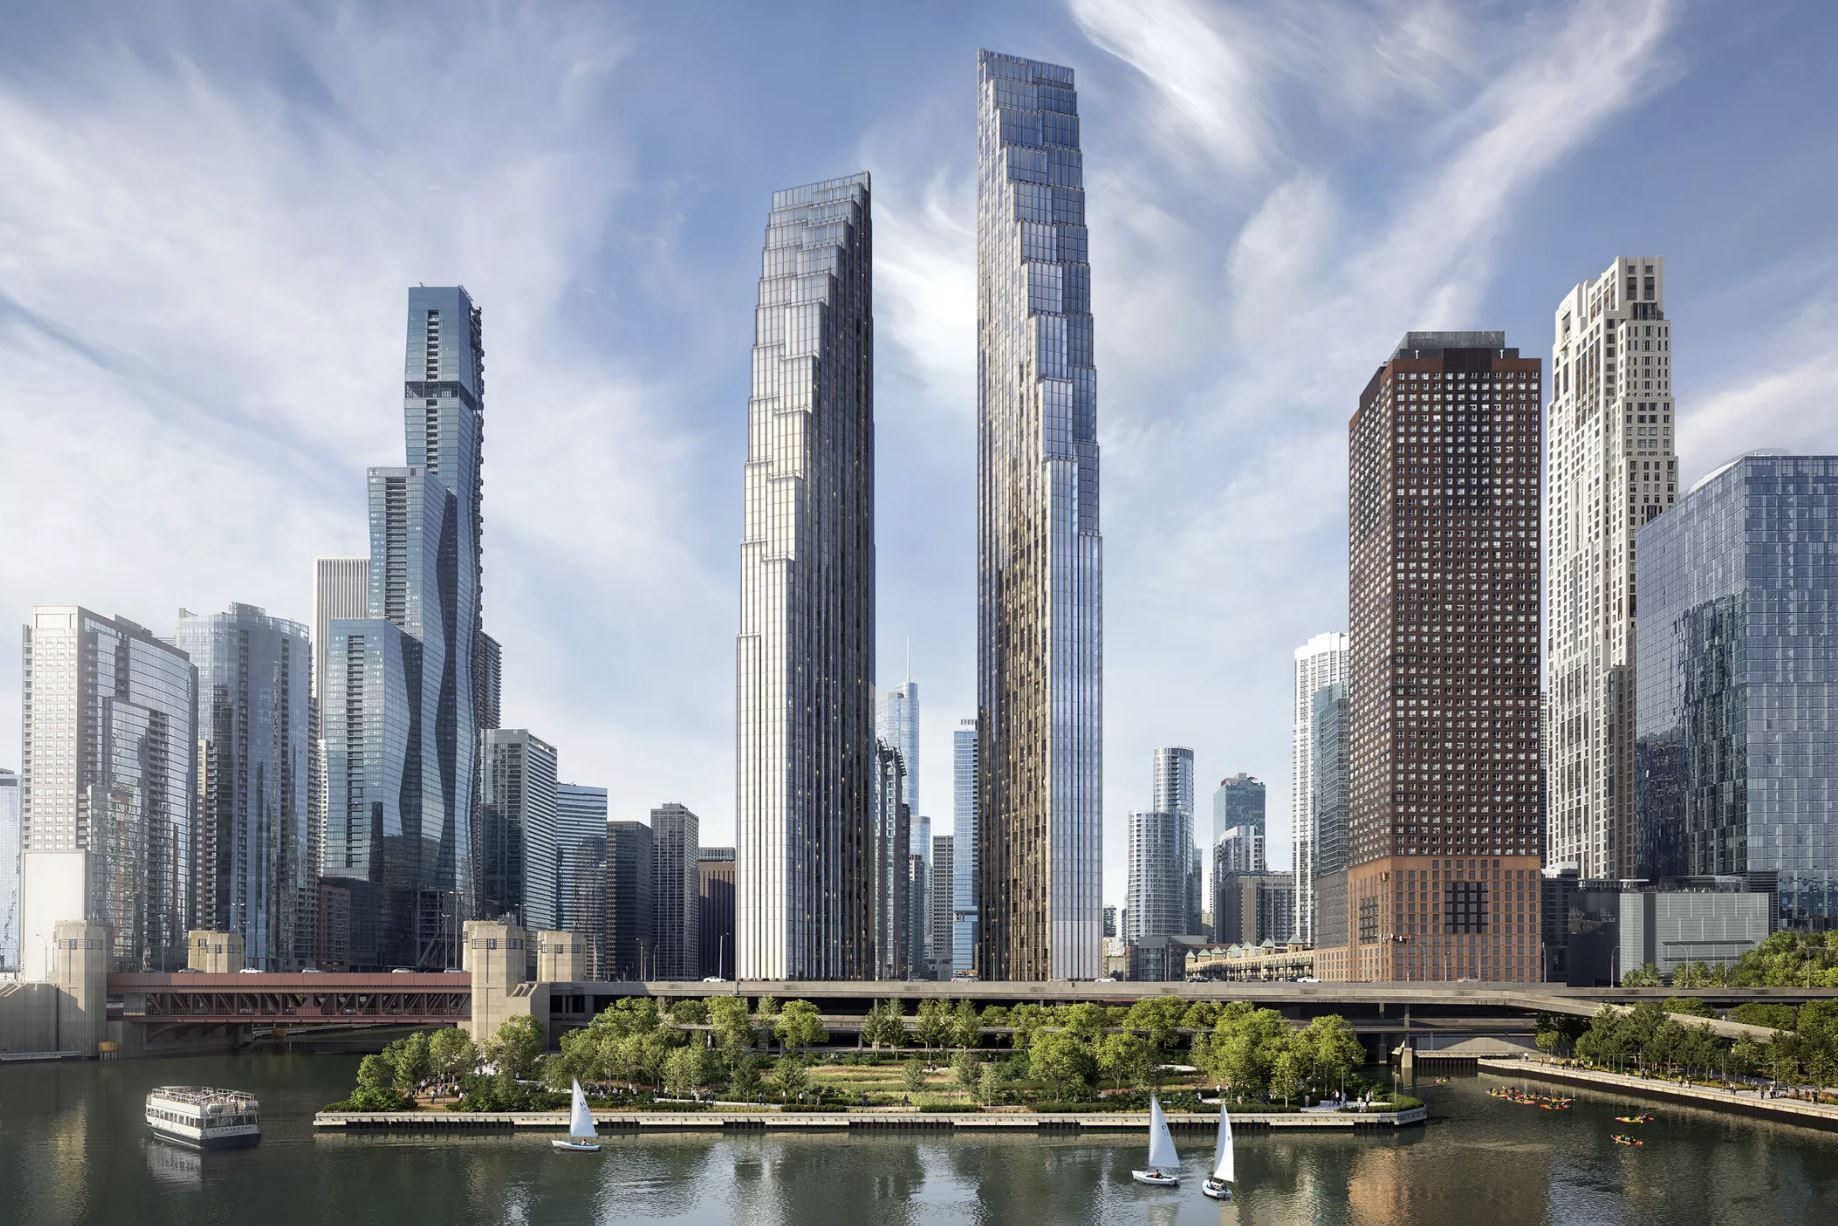 Both the Zoning Ordinance Administration and City Council have approved the updated plans for the development at 400 N Lake Shore Drive in Streeterville.